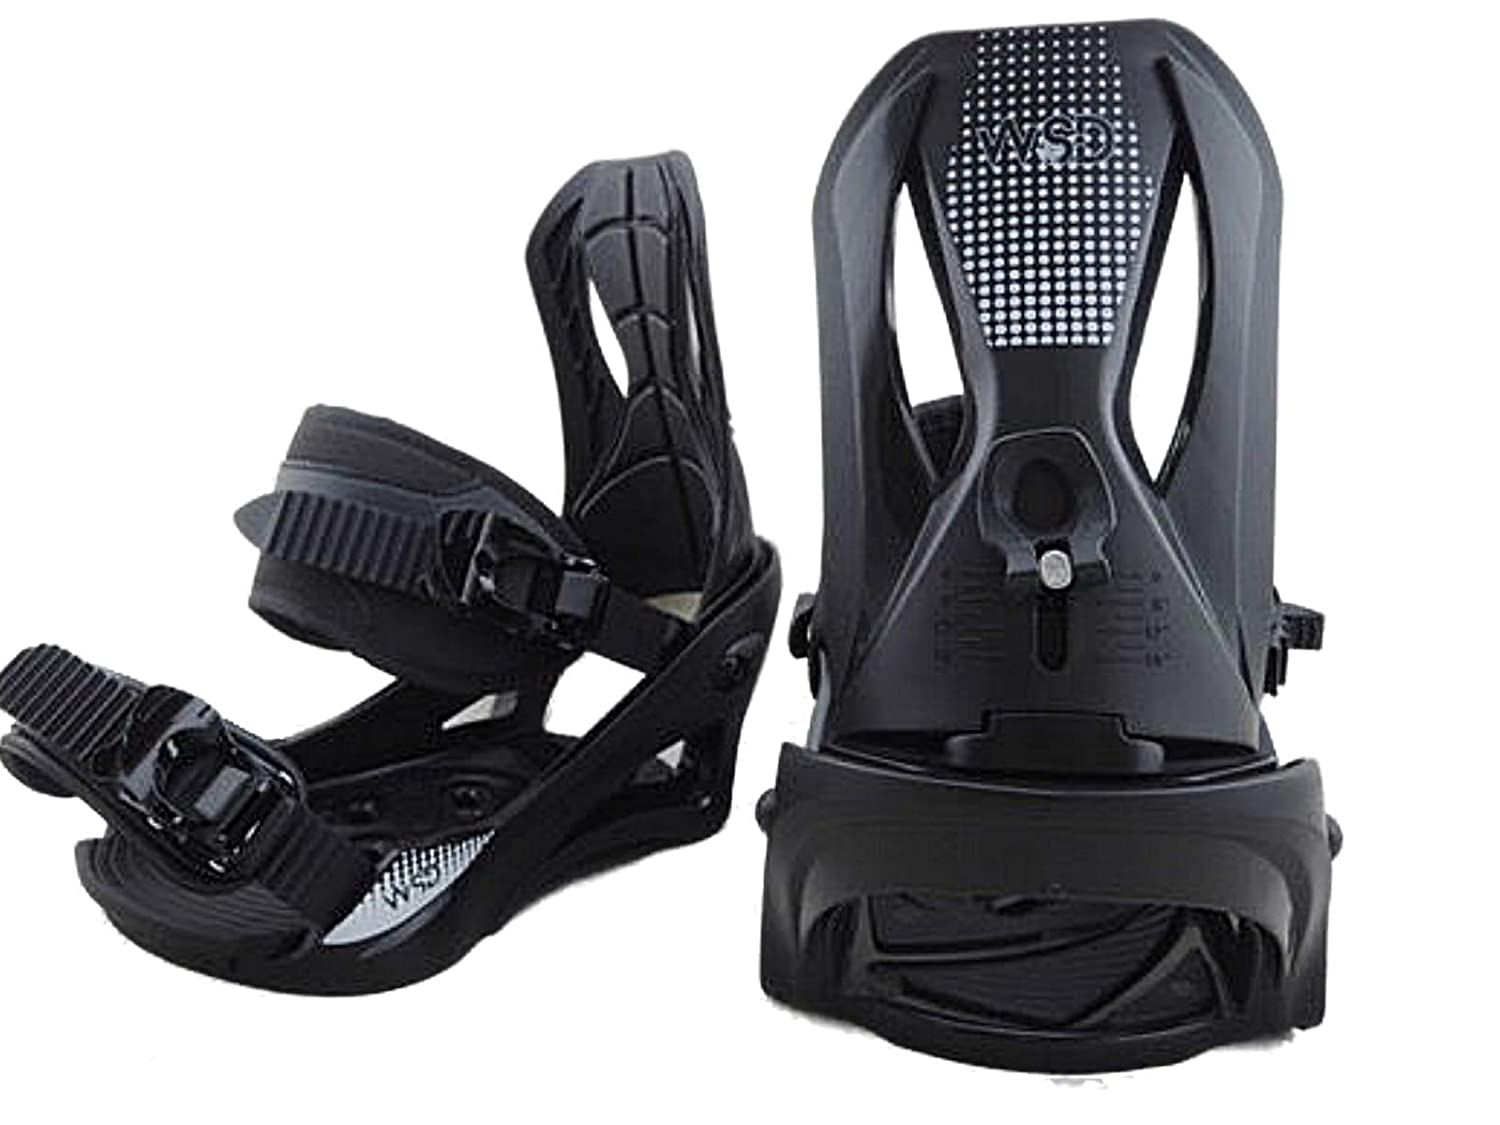 Top 10 Best Snowboard Bindings (2020 Reviews & Buying Guide) 3